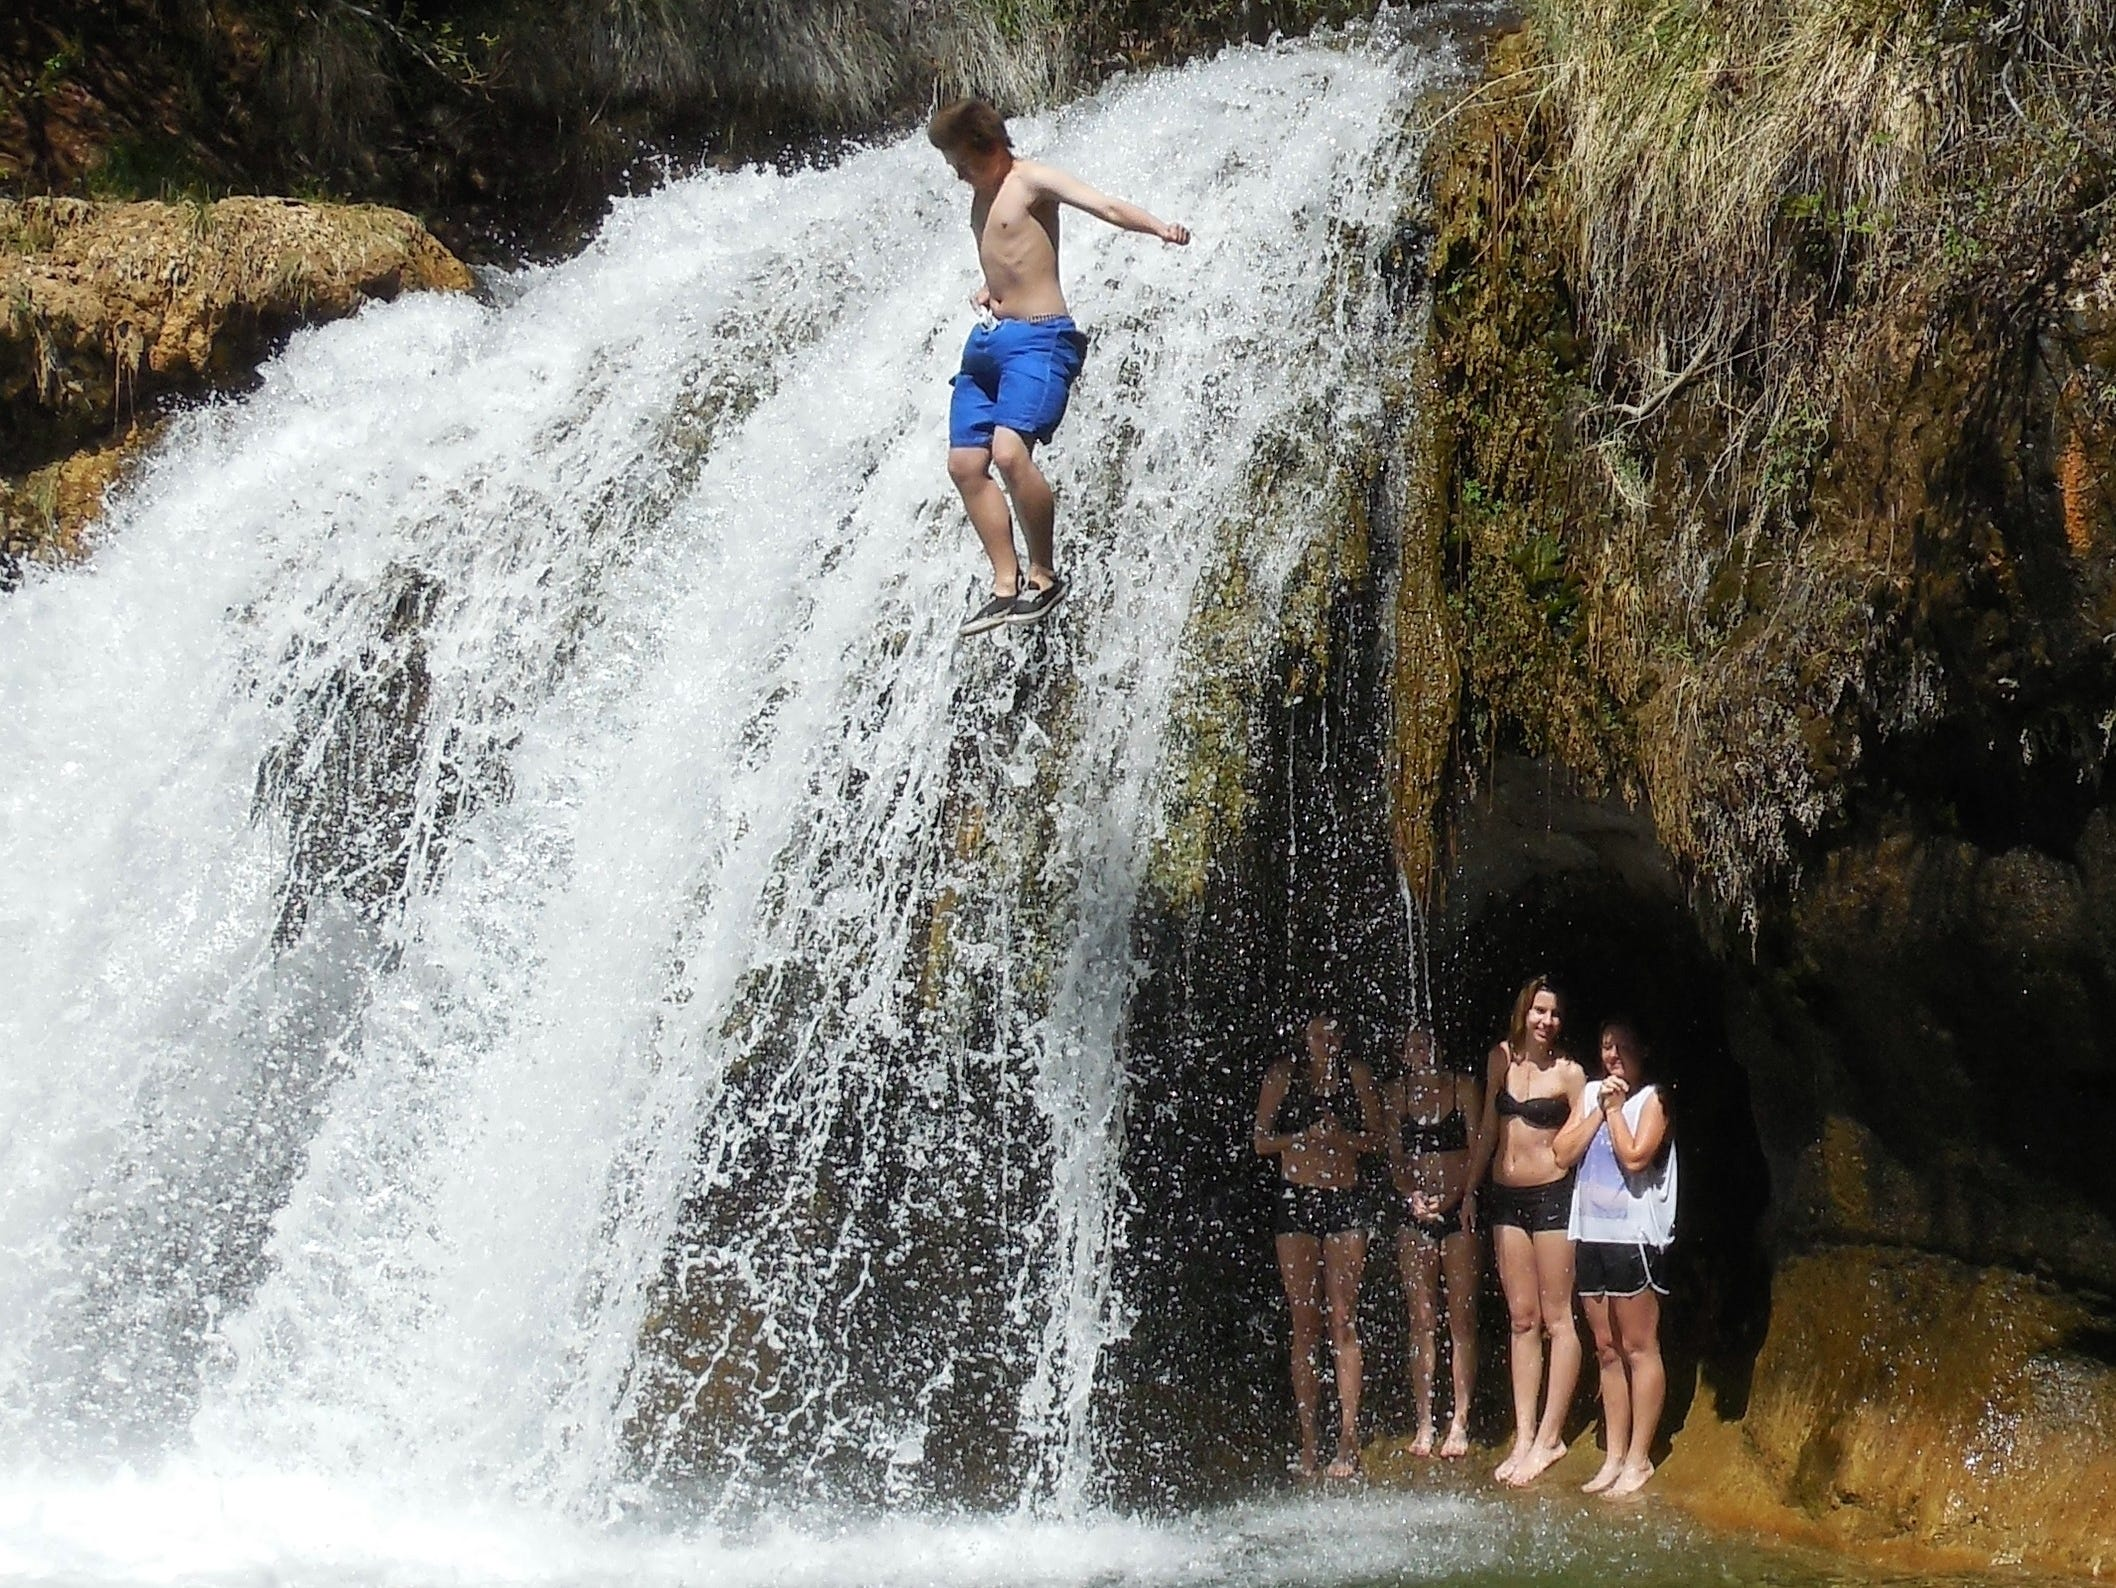 Fossil Creek is a popular swimming hole, but people have been injured and died in the area. Swimming and hiking are at your own risk. Use extreme caution.